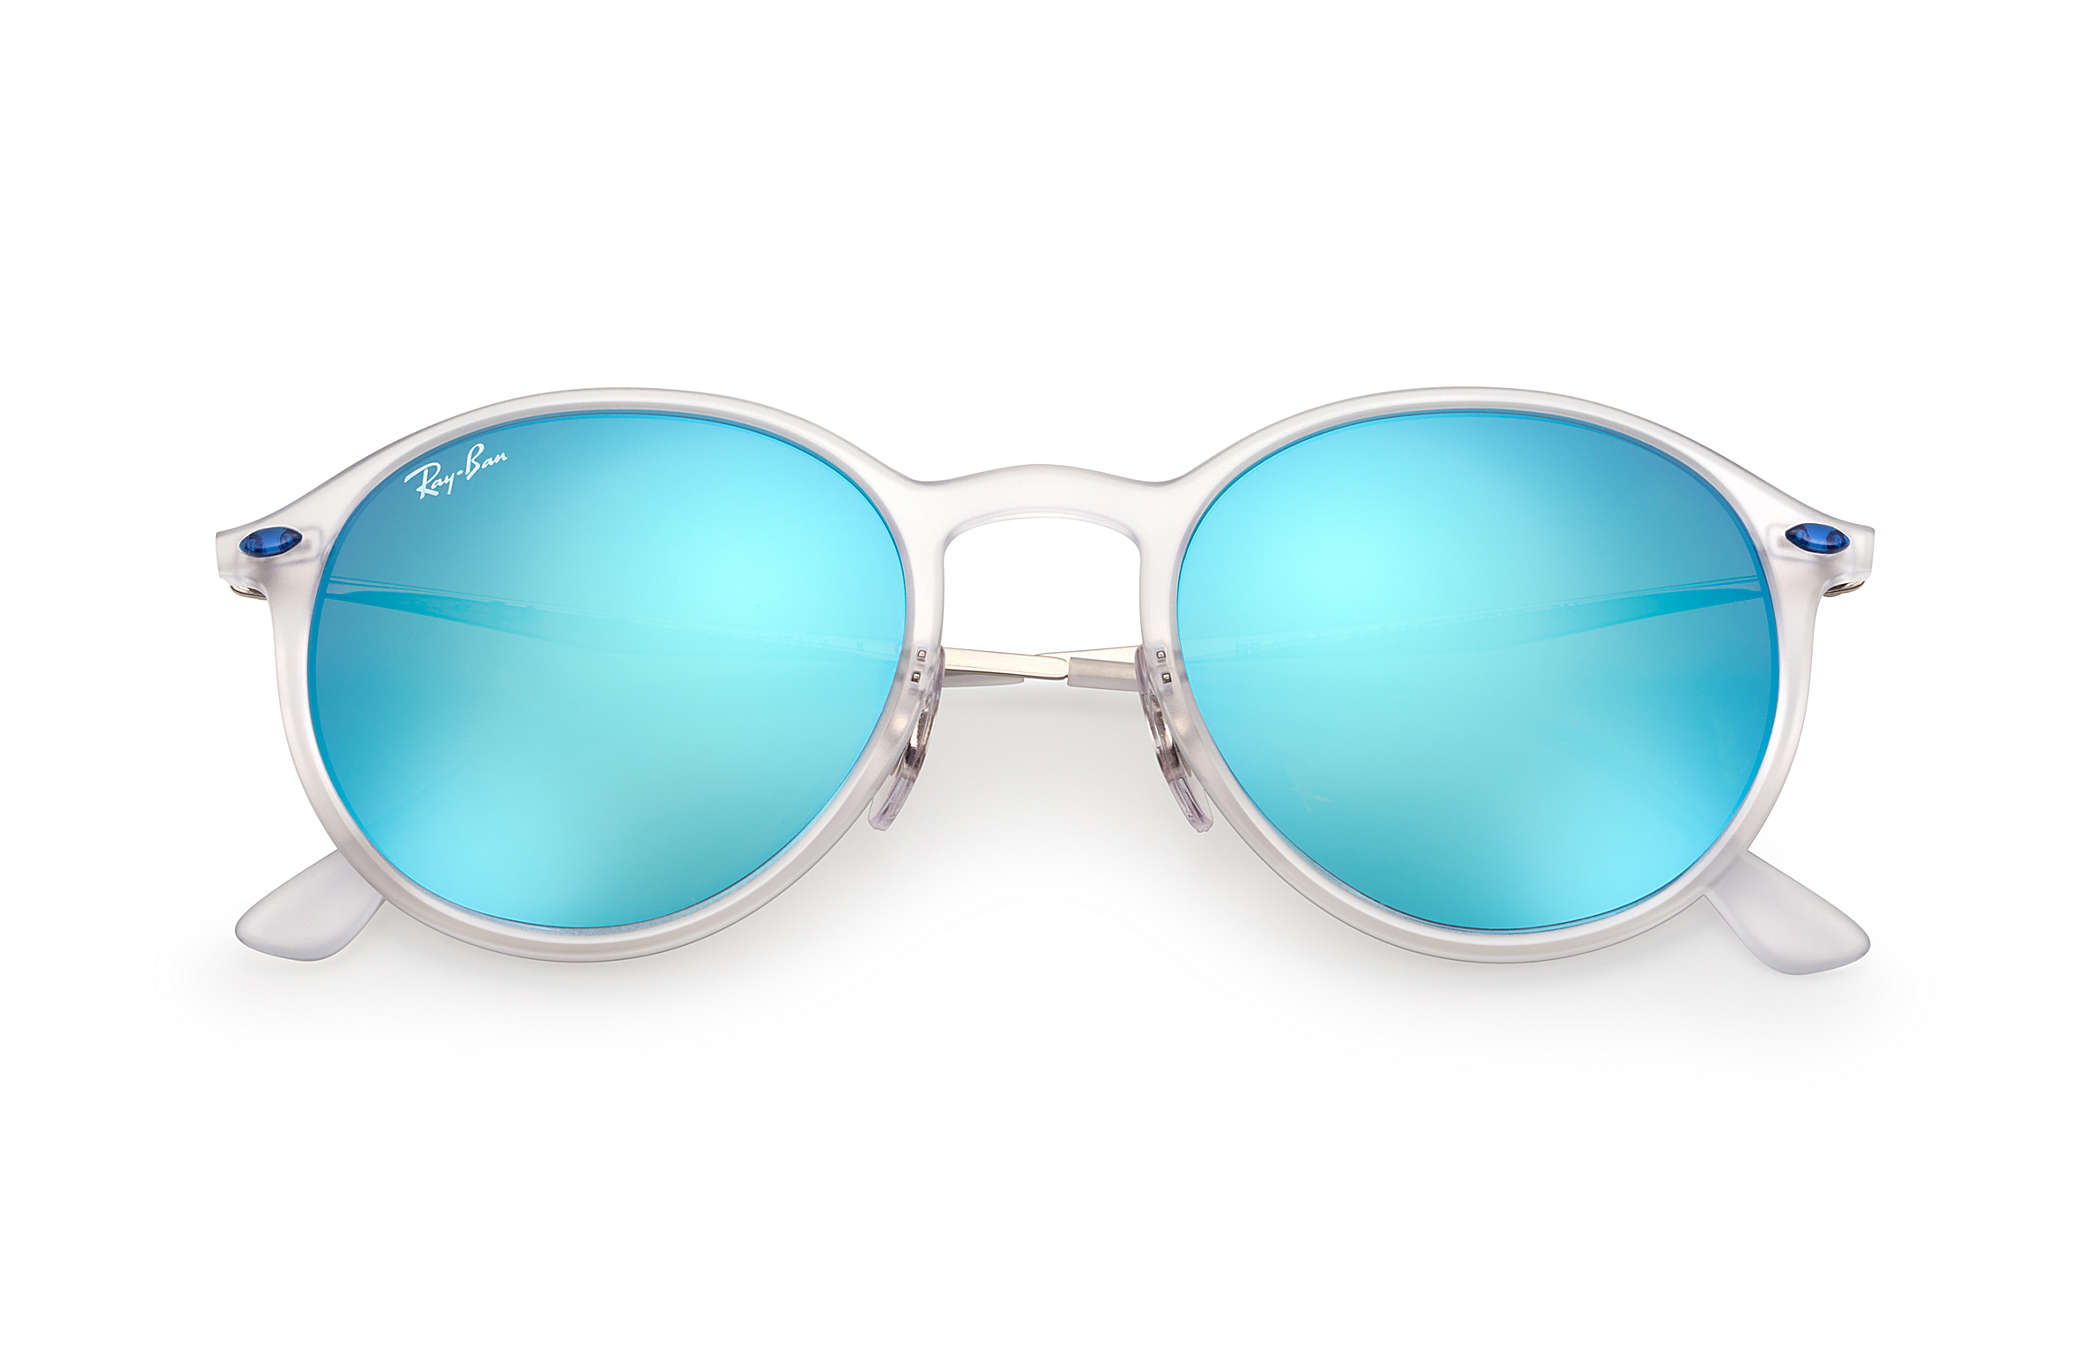 Ray-Ban Round Light Ray Transparent Silver, RB4224 | Ray-Ban® USA